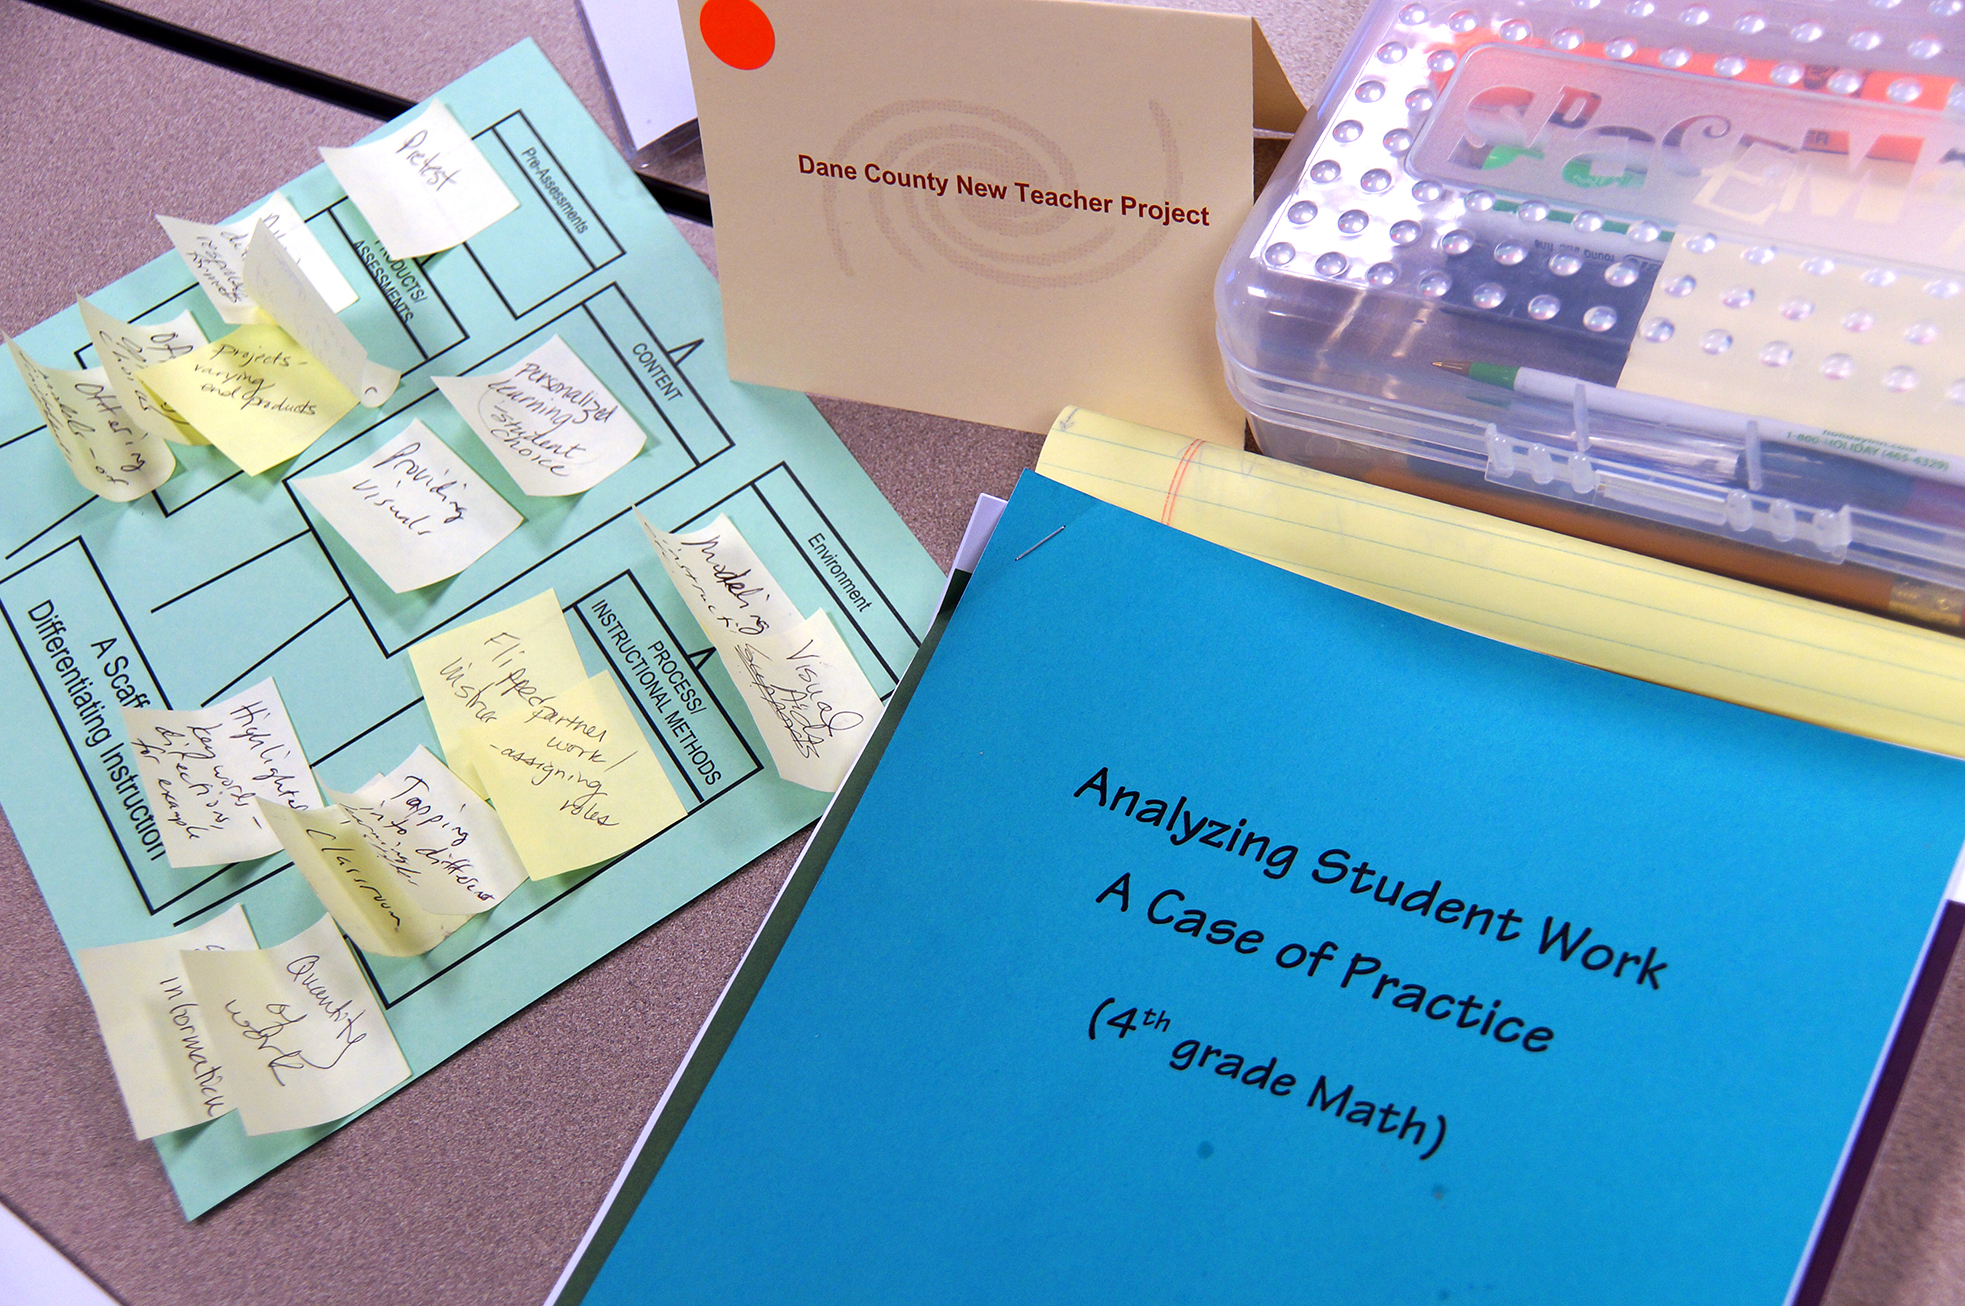 Mentor workshop materials for analyzing student work